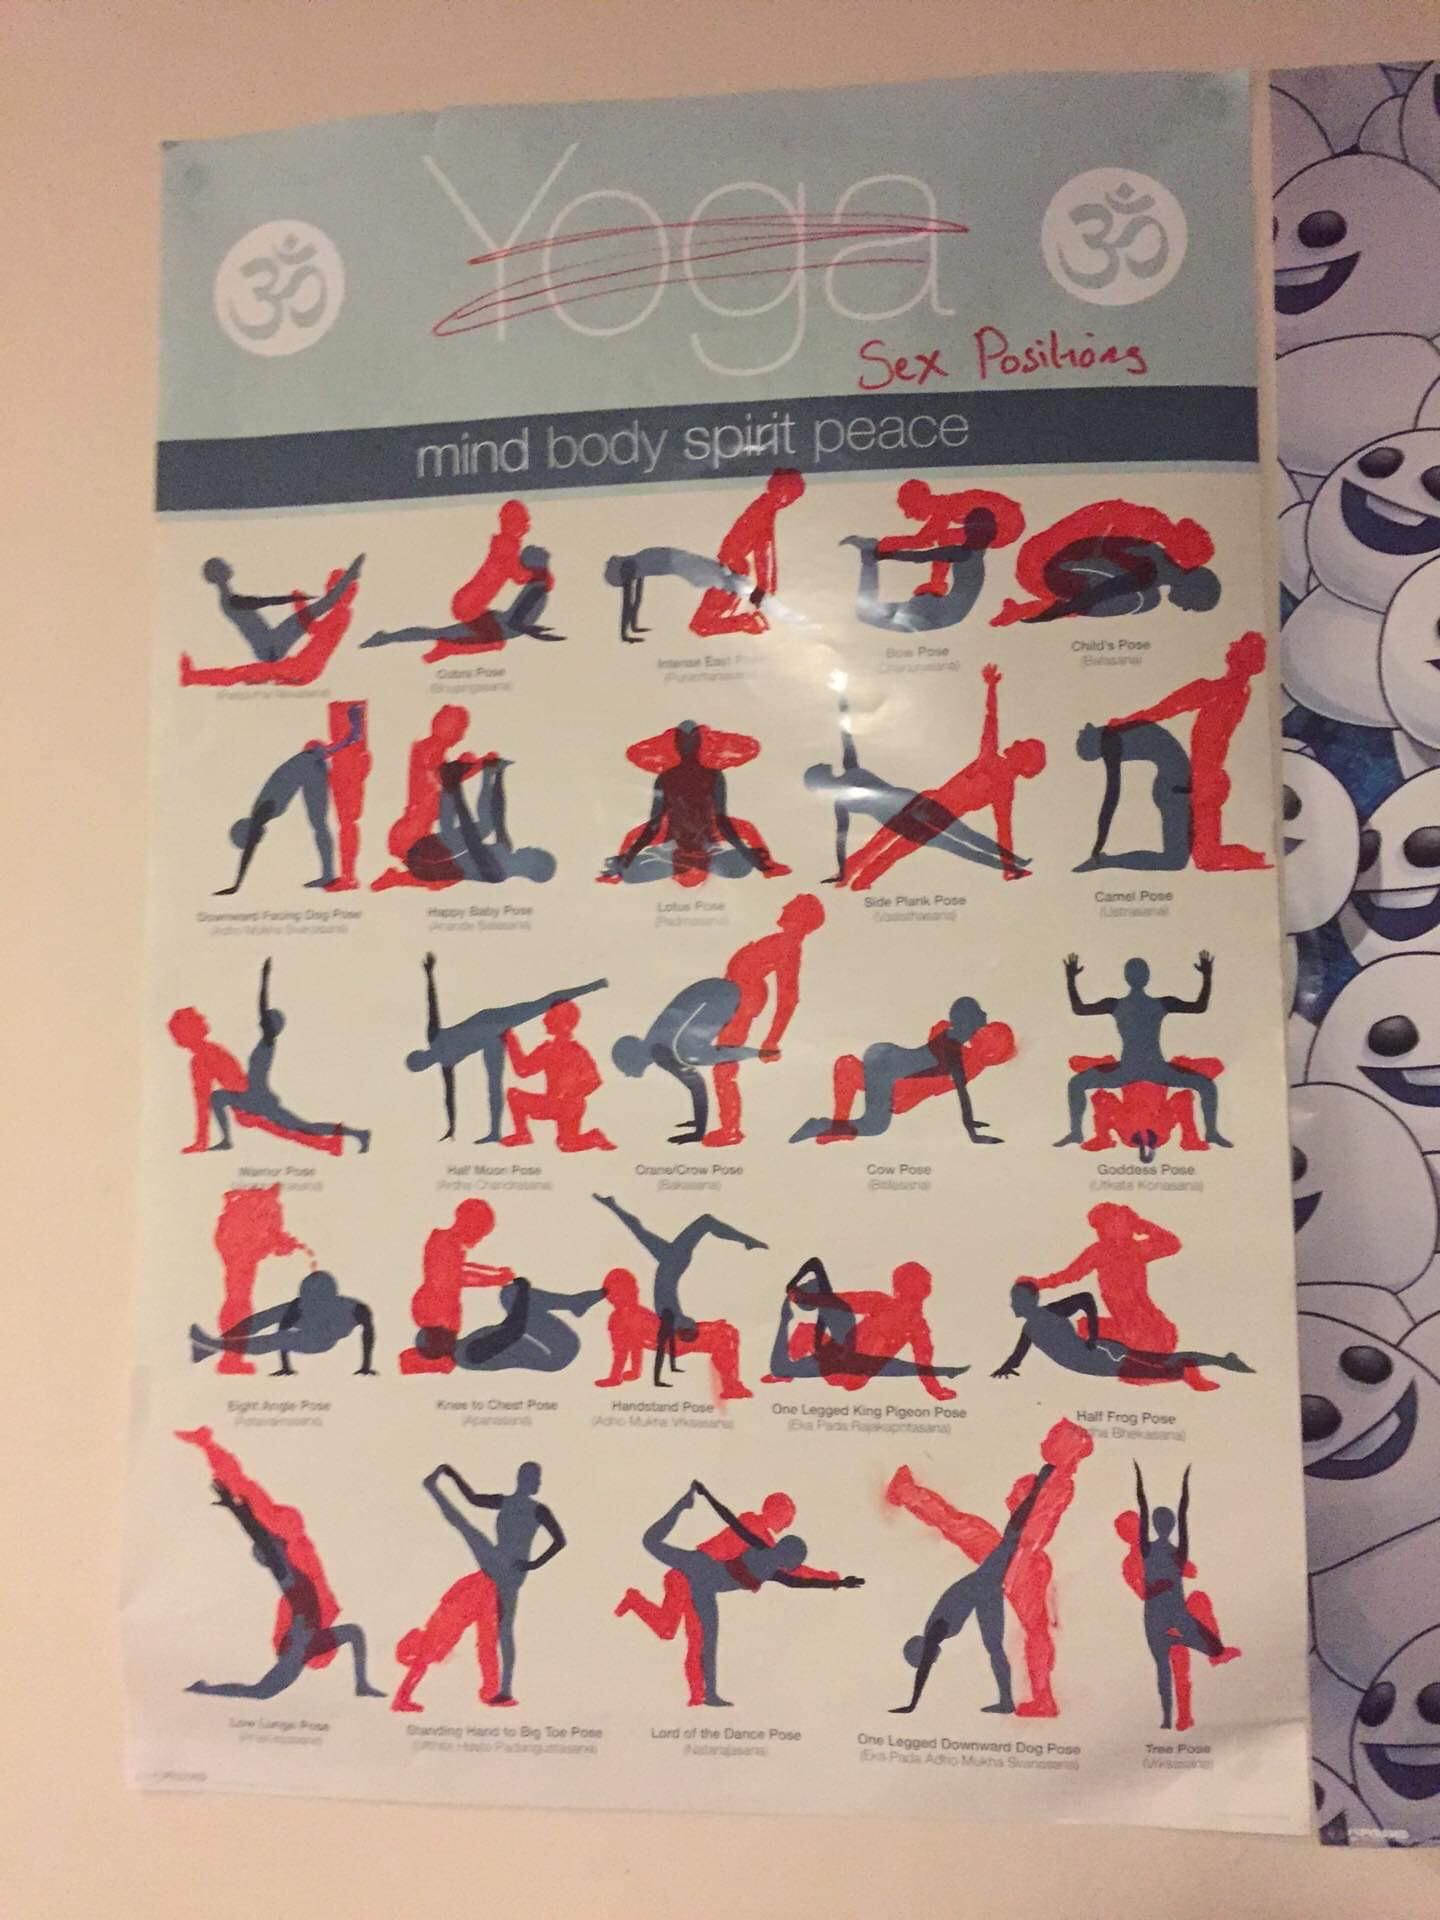 Friends roommate got this yoga poster while his roommate was away, he got drunk and did this to his roommates poster.